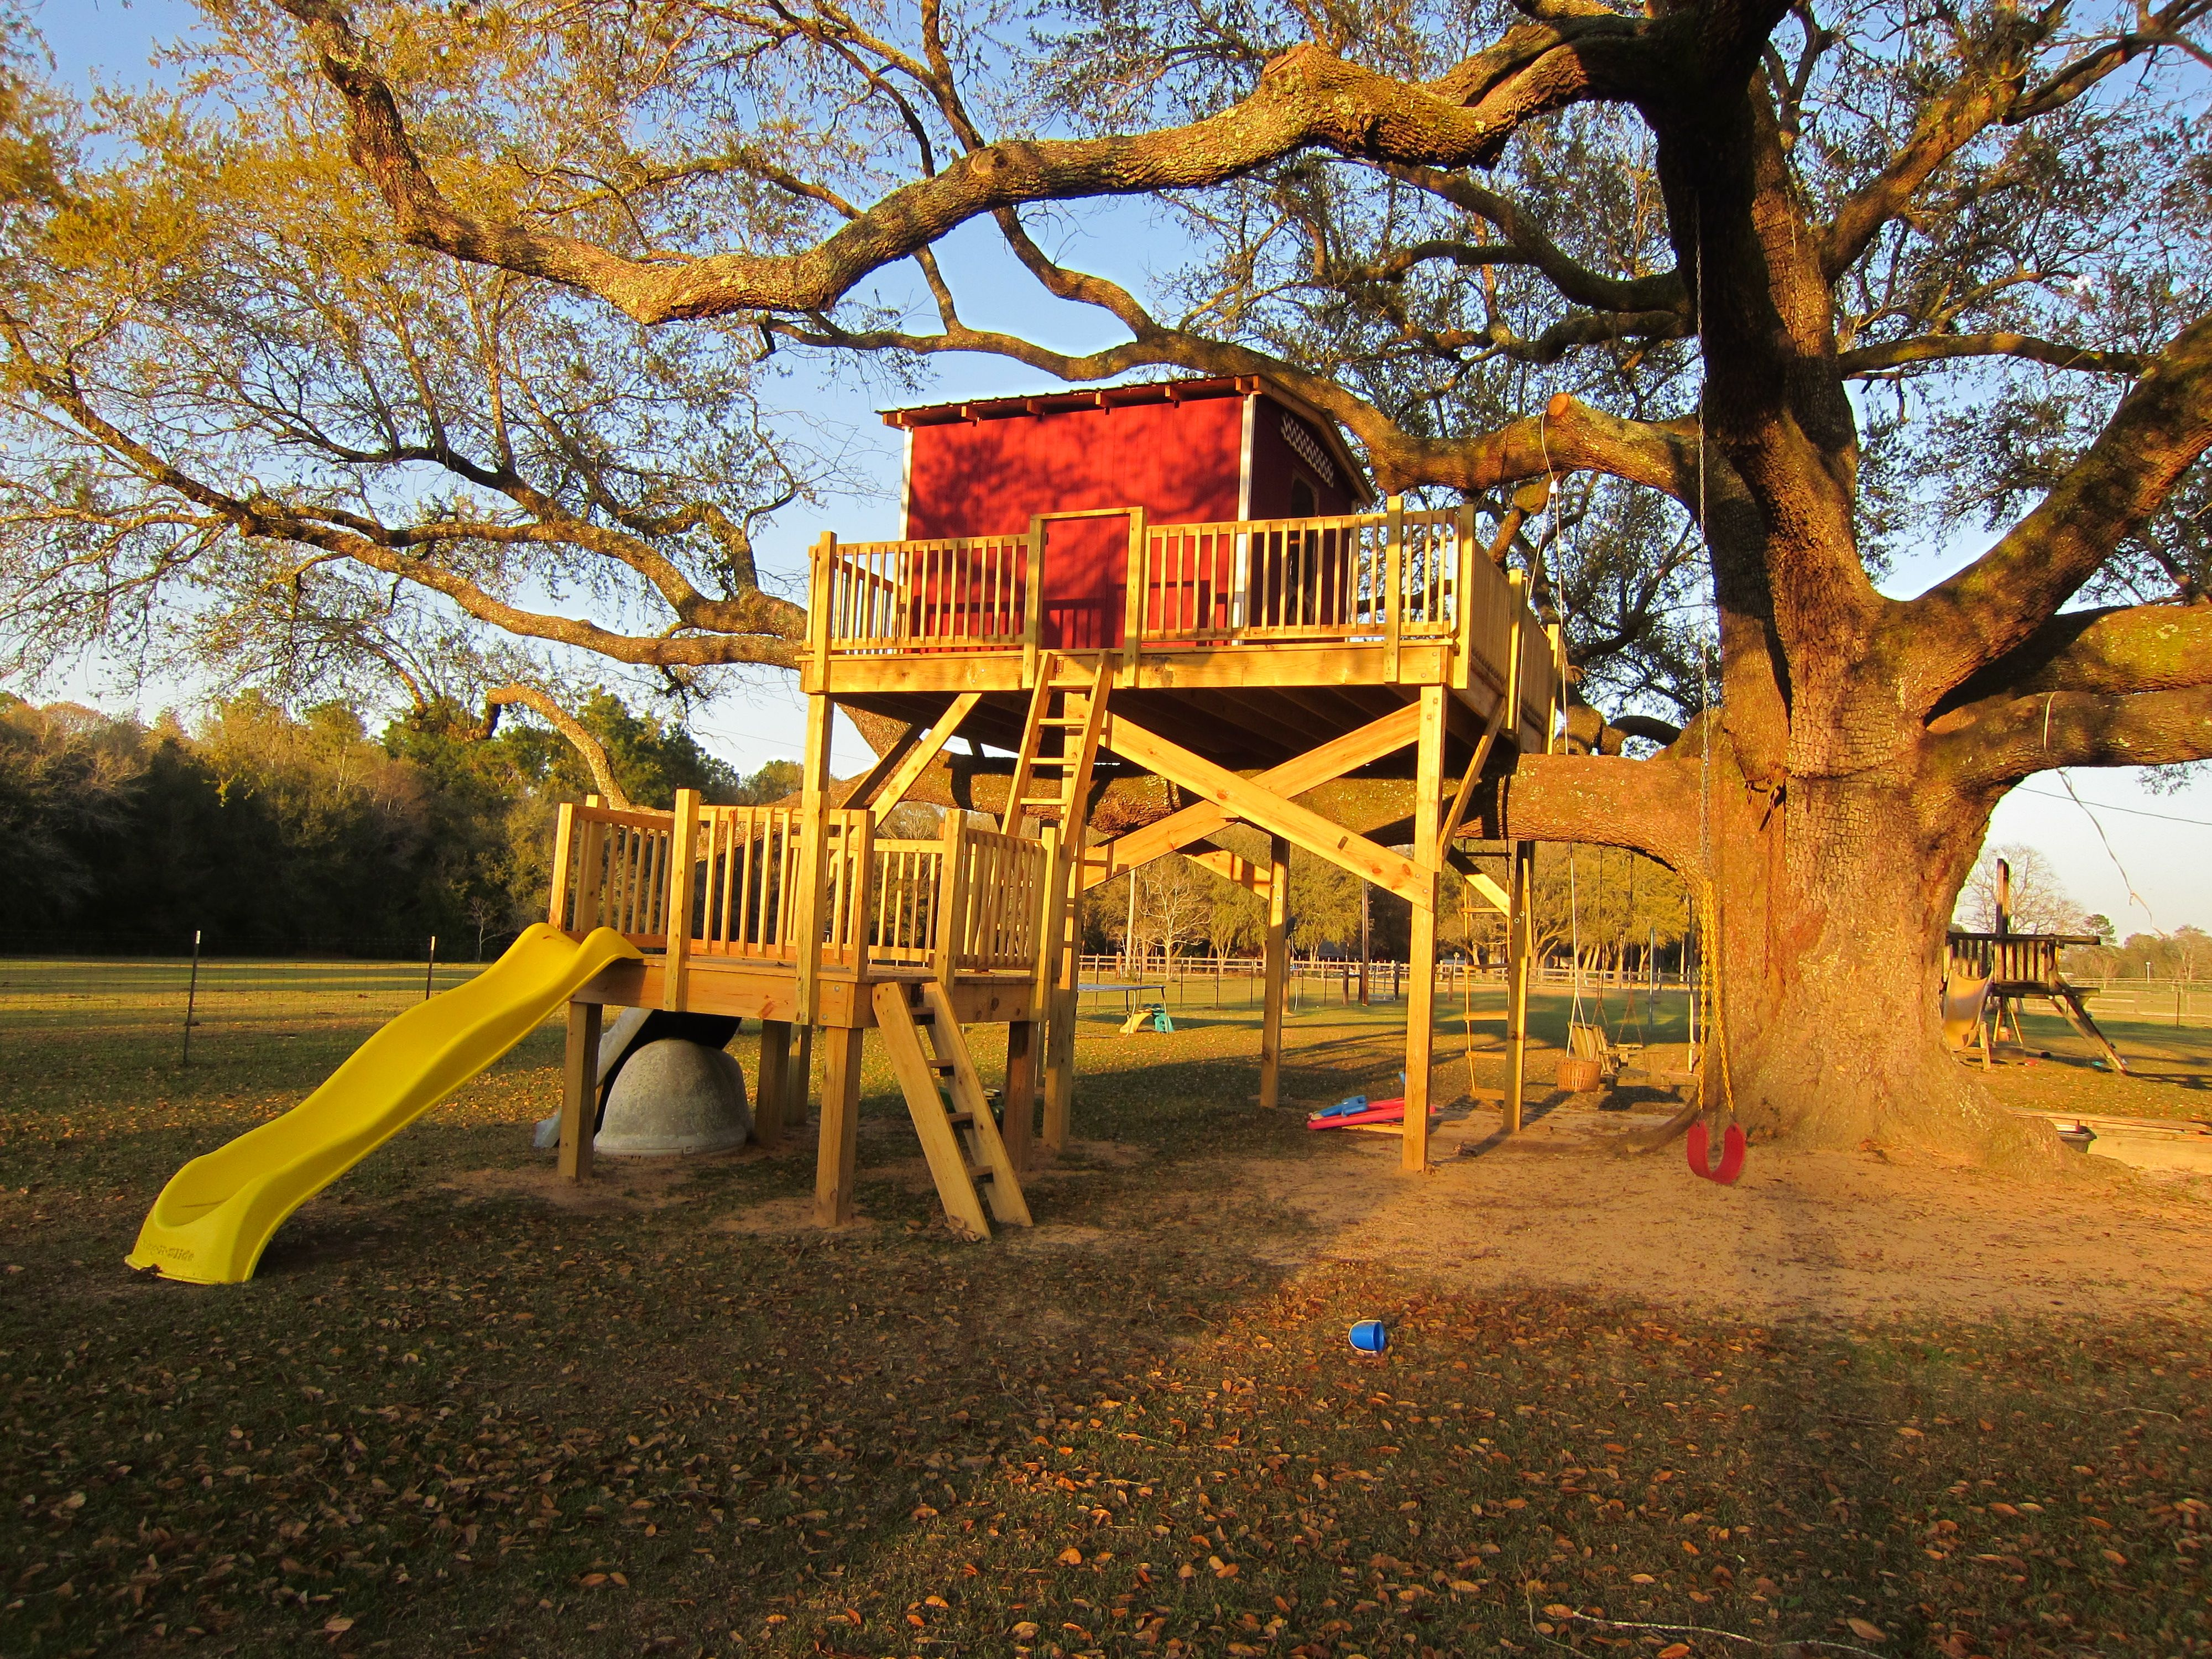 coolest treehouse ever fairly simple plan lower platform with